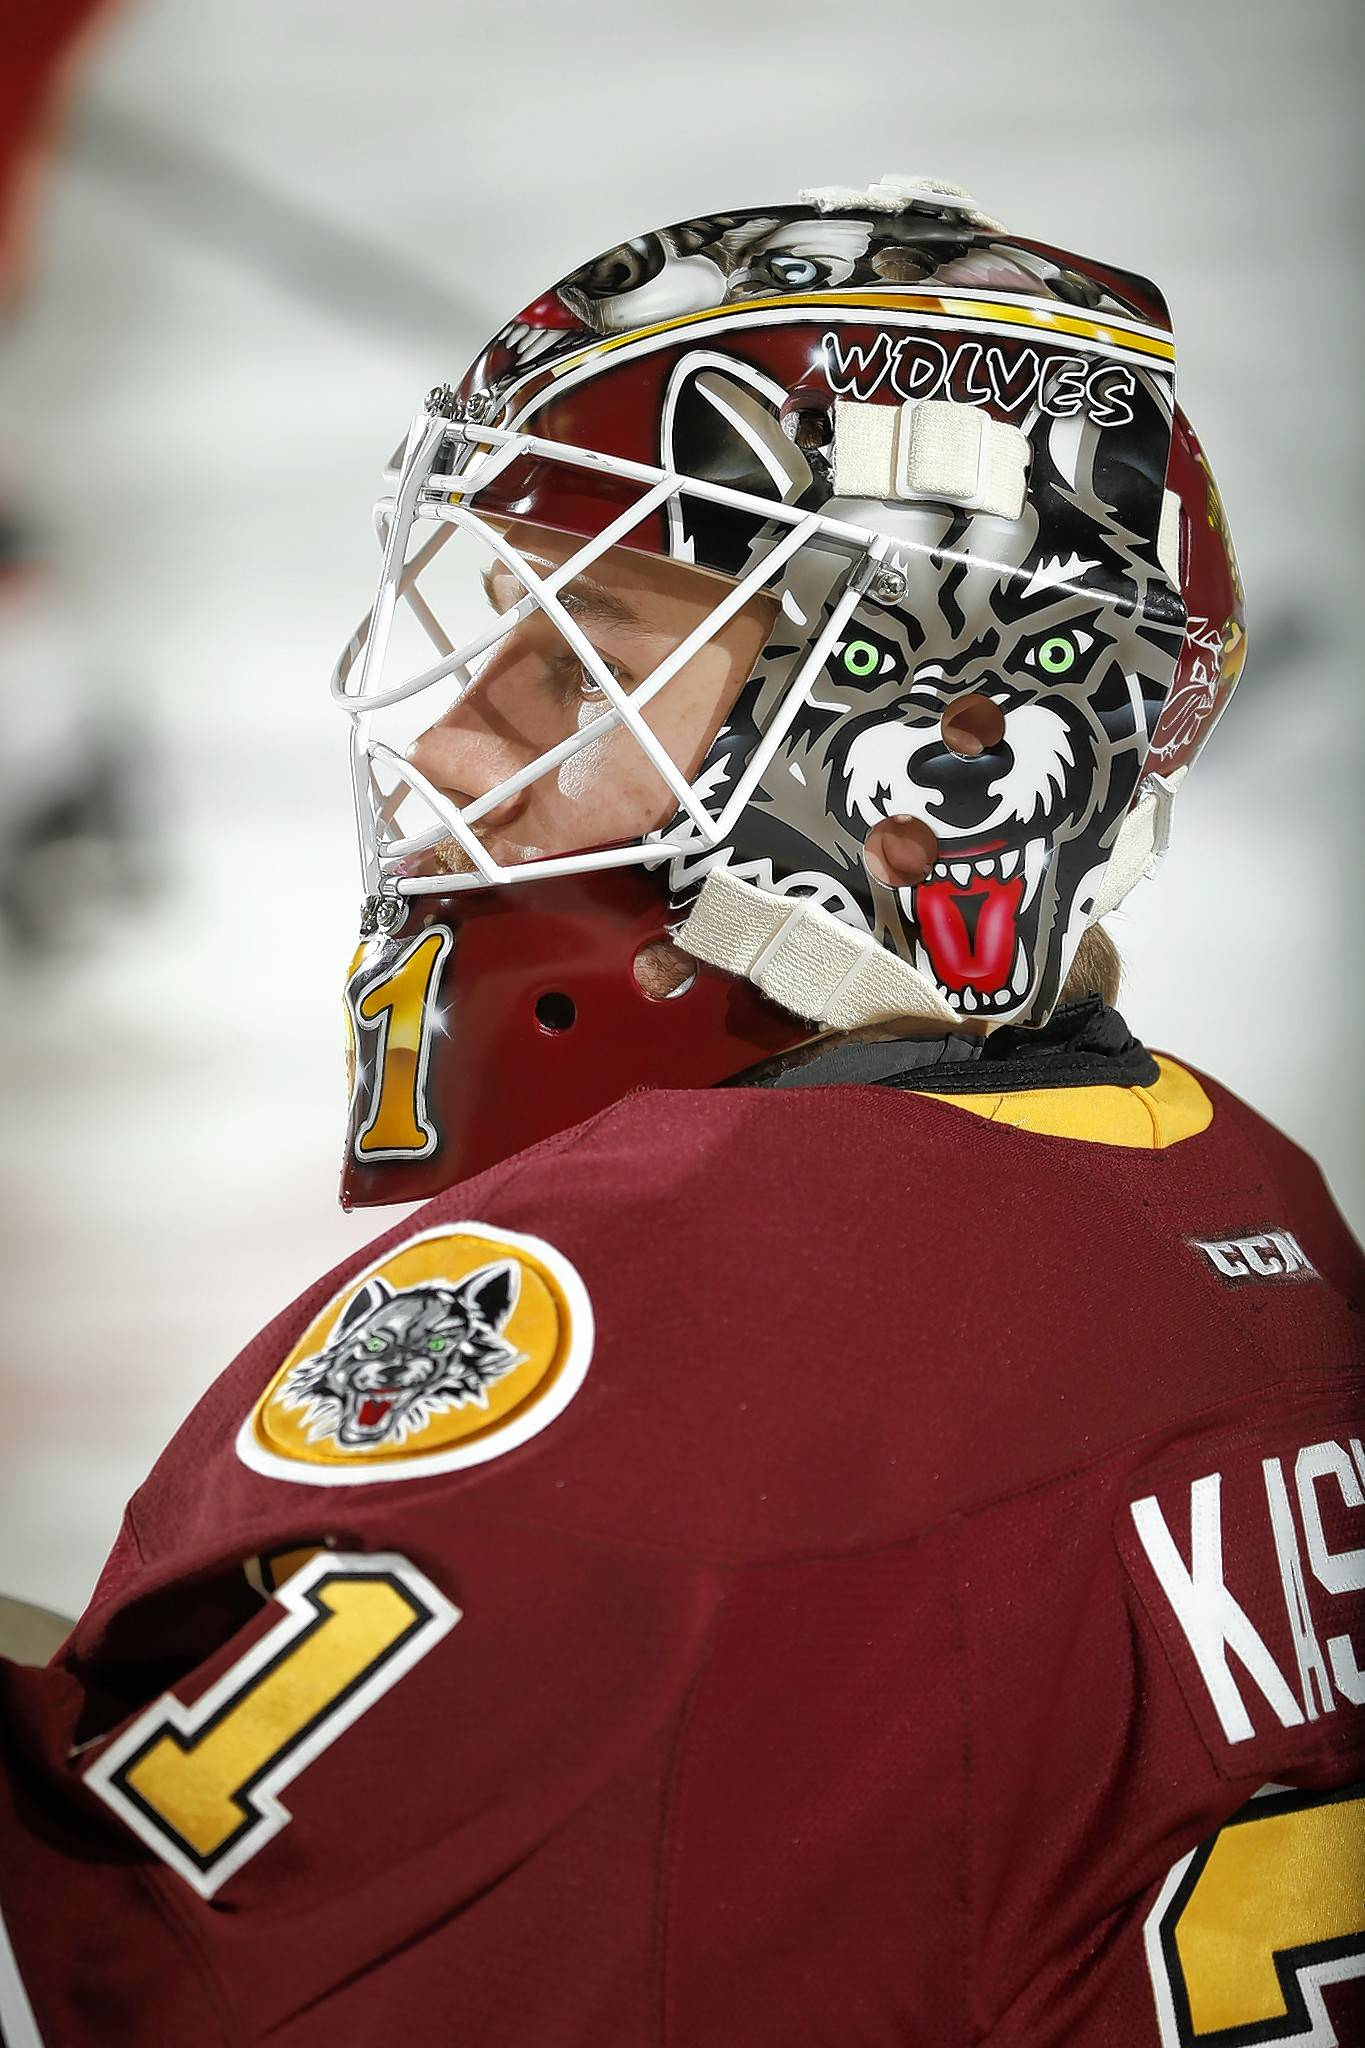 Don McClelland of Warrenville created the artwork on Wolves goalie Kasimir Kaskisuo's new mask. McClelland also produces customized mask art for local high schools and men's leagues.